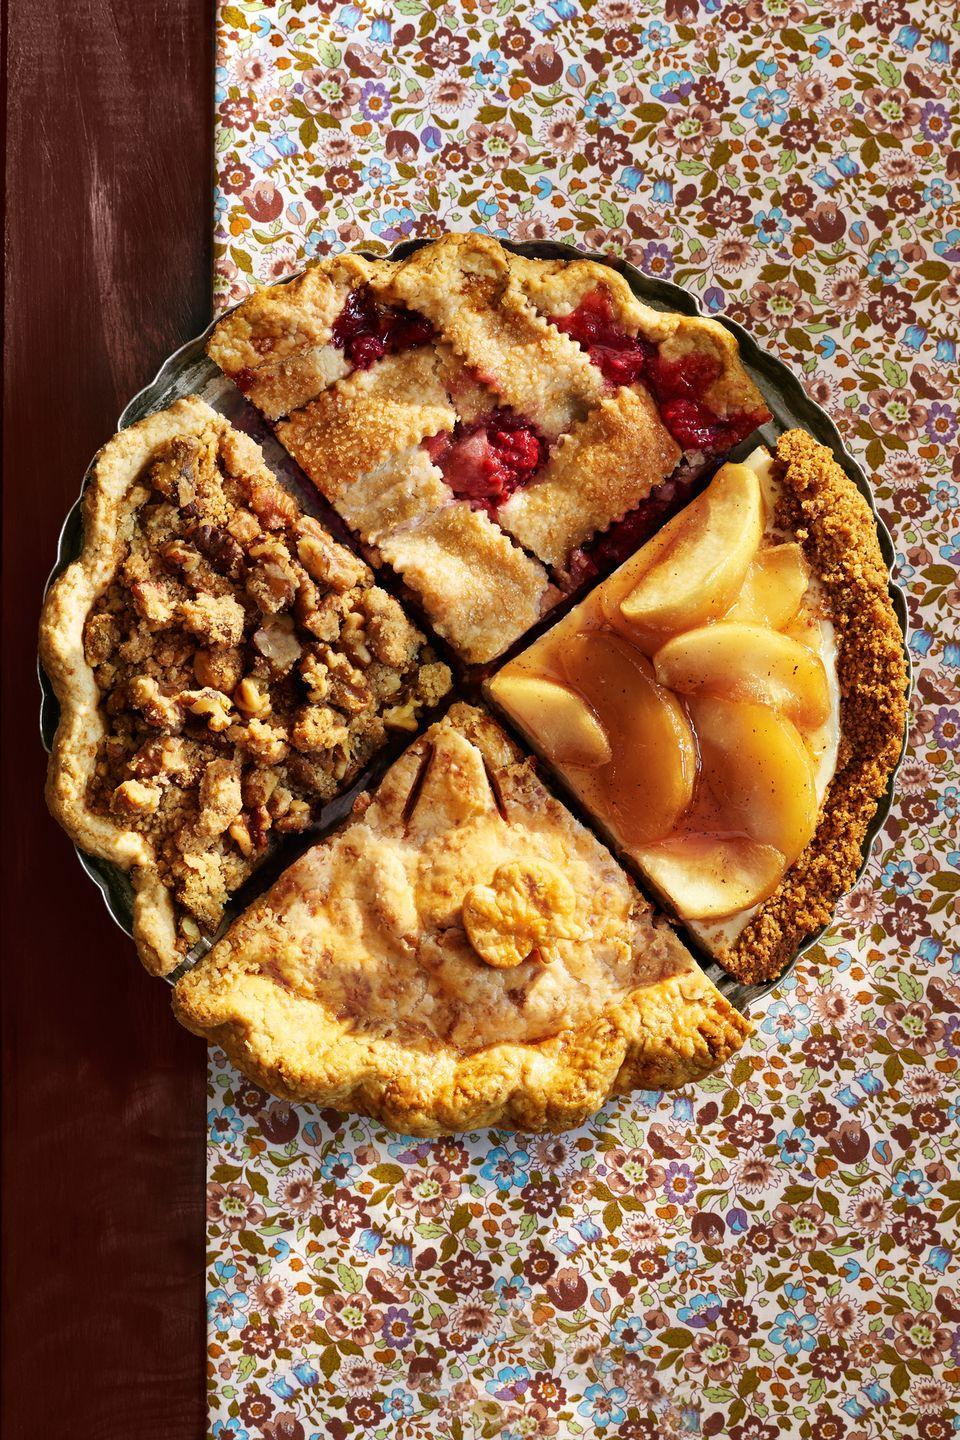 """<p>Satisfy all your guests by serving up a bounty of fall's best flavors all in one pie platter. Or, choose your favorite of these four delicious recipes. </p><p><strong>Recipes: </strong></p><p><strong><a href=""""https://www.countryliving.com/food-drinks/recipes/a36557/ginger-apple-walnut-crumble-pie/"""" rel=""""nofollow noopener"""" target=""""_blank"""" data-ylk=""""slk:Ginger Apple-Walnut Crumble Pie"""" class=""""link rapid-noclick-resp"""">Ginger Apple-Walnut Crumble Pie</a><br></strong></p><p><strong><a href=""""https://www.countryliving.com/food-drinks/recipes/a36582/apple-raspberry-pie/"""" rel=""""nofollow noopener"""" target=""""_blank"""" data-ylk=""""slk:Apple-Raspberry Pie"""" class=""""link rapid-noclick-resp"""">Apple-Raspberry Pie</a><br></strong></p><p><strong><a href=""""https://www.countryliving.com/food-drinks/recipes/a36584/caramelized-apple-cheesecake/"""" rel=""""nofollow noopener"""" target=""""_blank"""" data-ylk=""""slk:Caramelized Apple Cheesecake"""" class=""""link rapid-noclick-resp"""">Caramelized Apple Cheesecake</a><br></strong></p><p><a href=""""https://www.countryliving.com/food-drinks/recipes/a36585/brown-butter-apple-pie-with-cheddar-crust/"""" rel=""""nofollow noopener"""" target=""""_blank"""" data-ylk=""""slk:Brown Butter Apple Pie with Cheddar Crust"""" class=""""link rapid-noclick-resp""""><strong>Brown Butter Apple Pie with Cheddar Crust</strong></a><br></p>"""